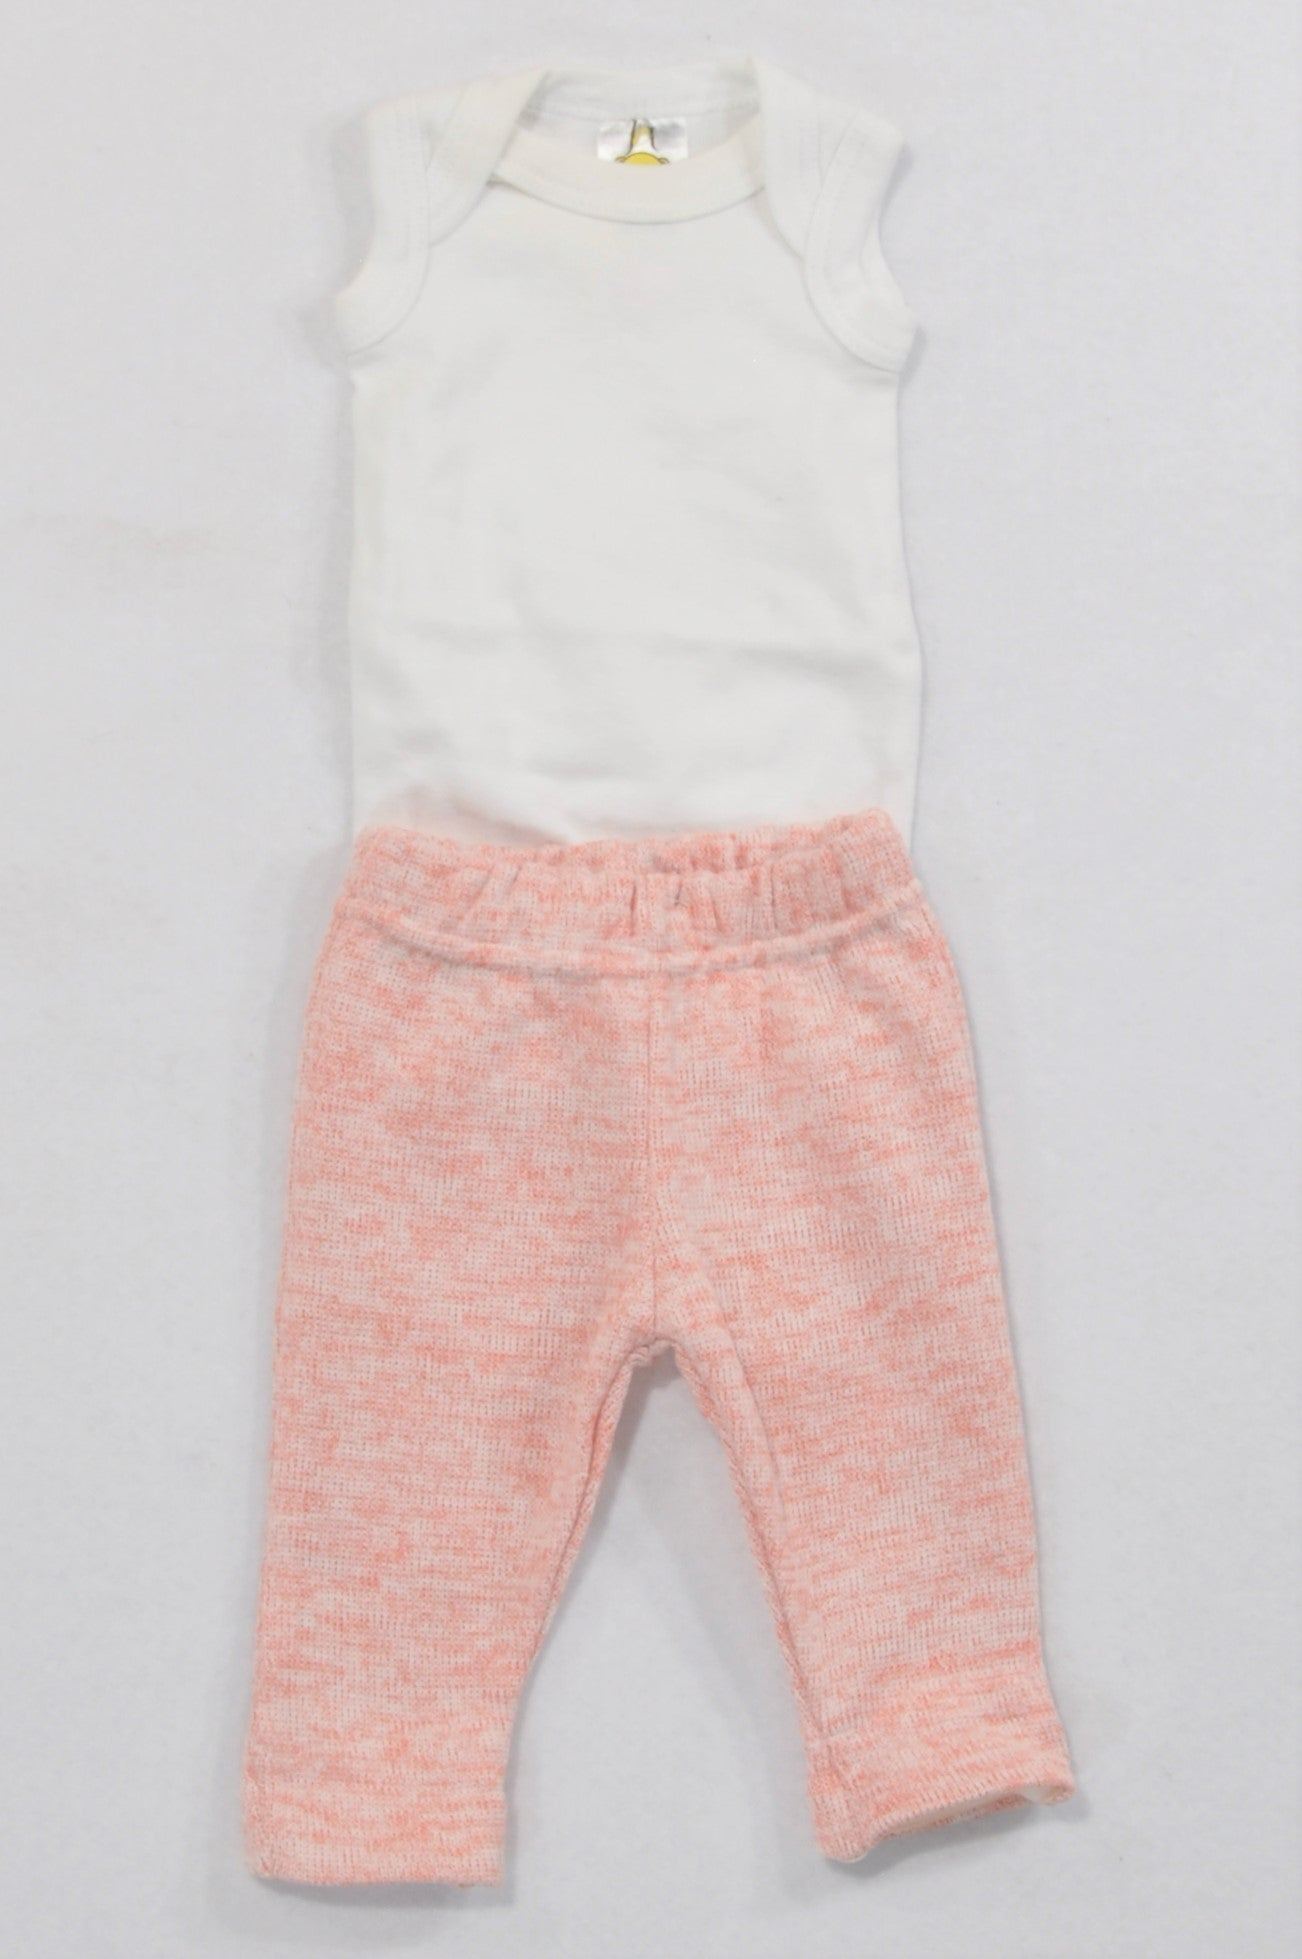 Jet White Baby Grow & Heathered Knit Leggings Outfit Girls N-B